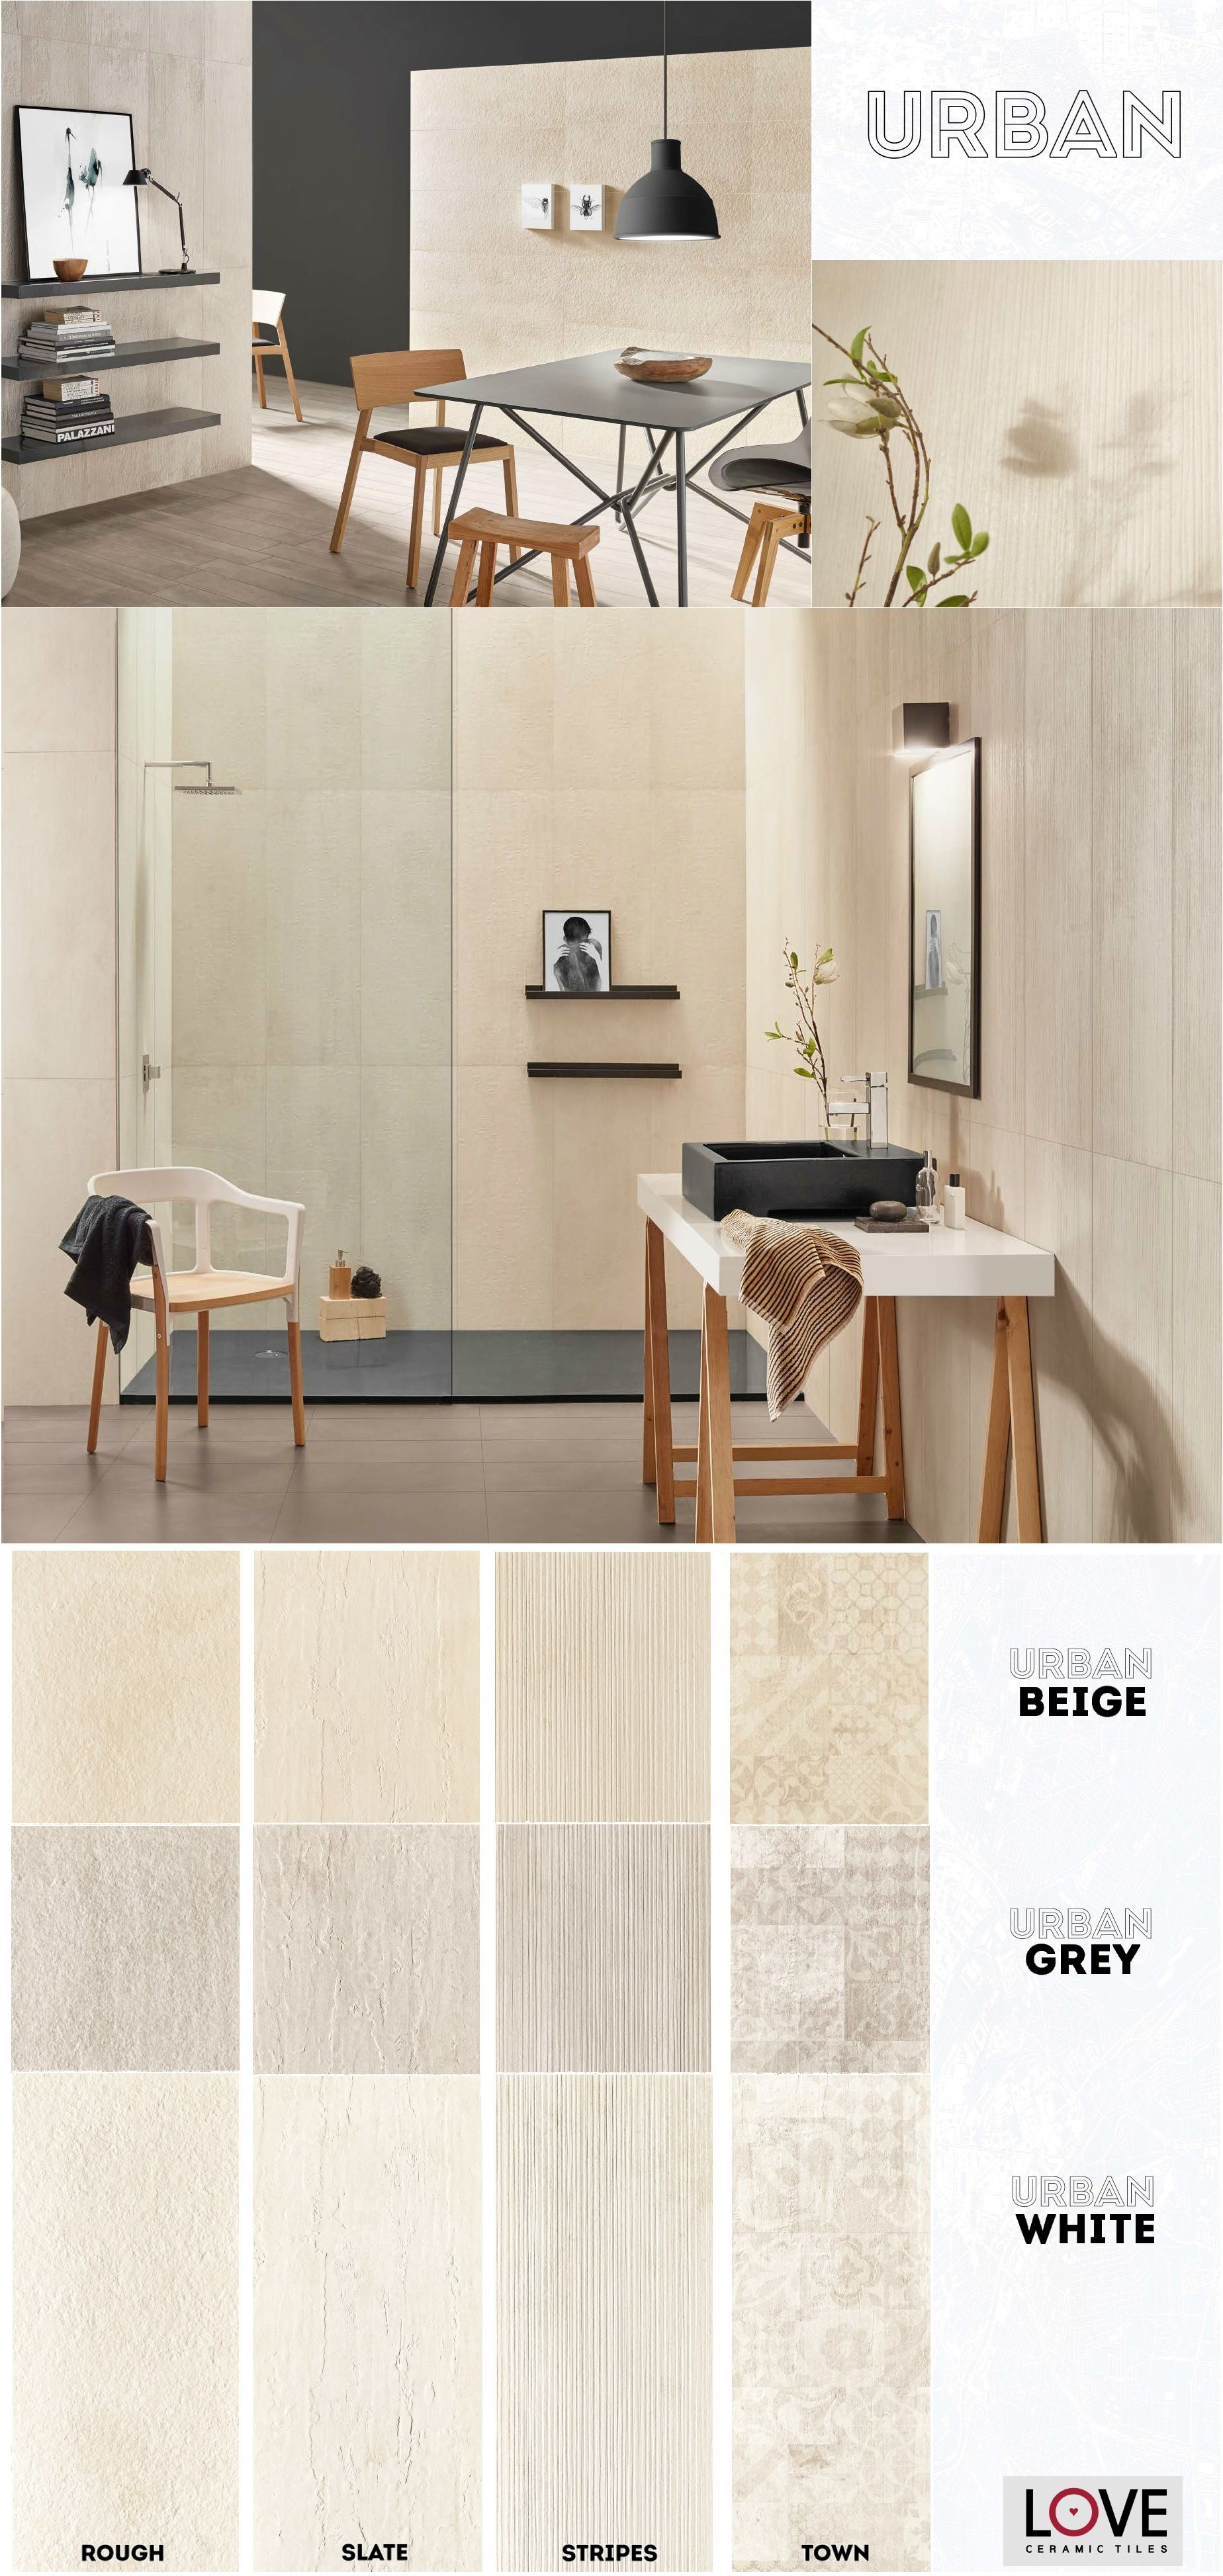 Urban collection rough slate stripes and town series for Carrelage urban white